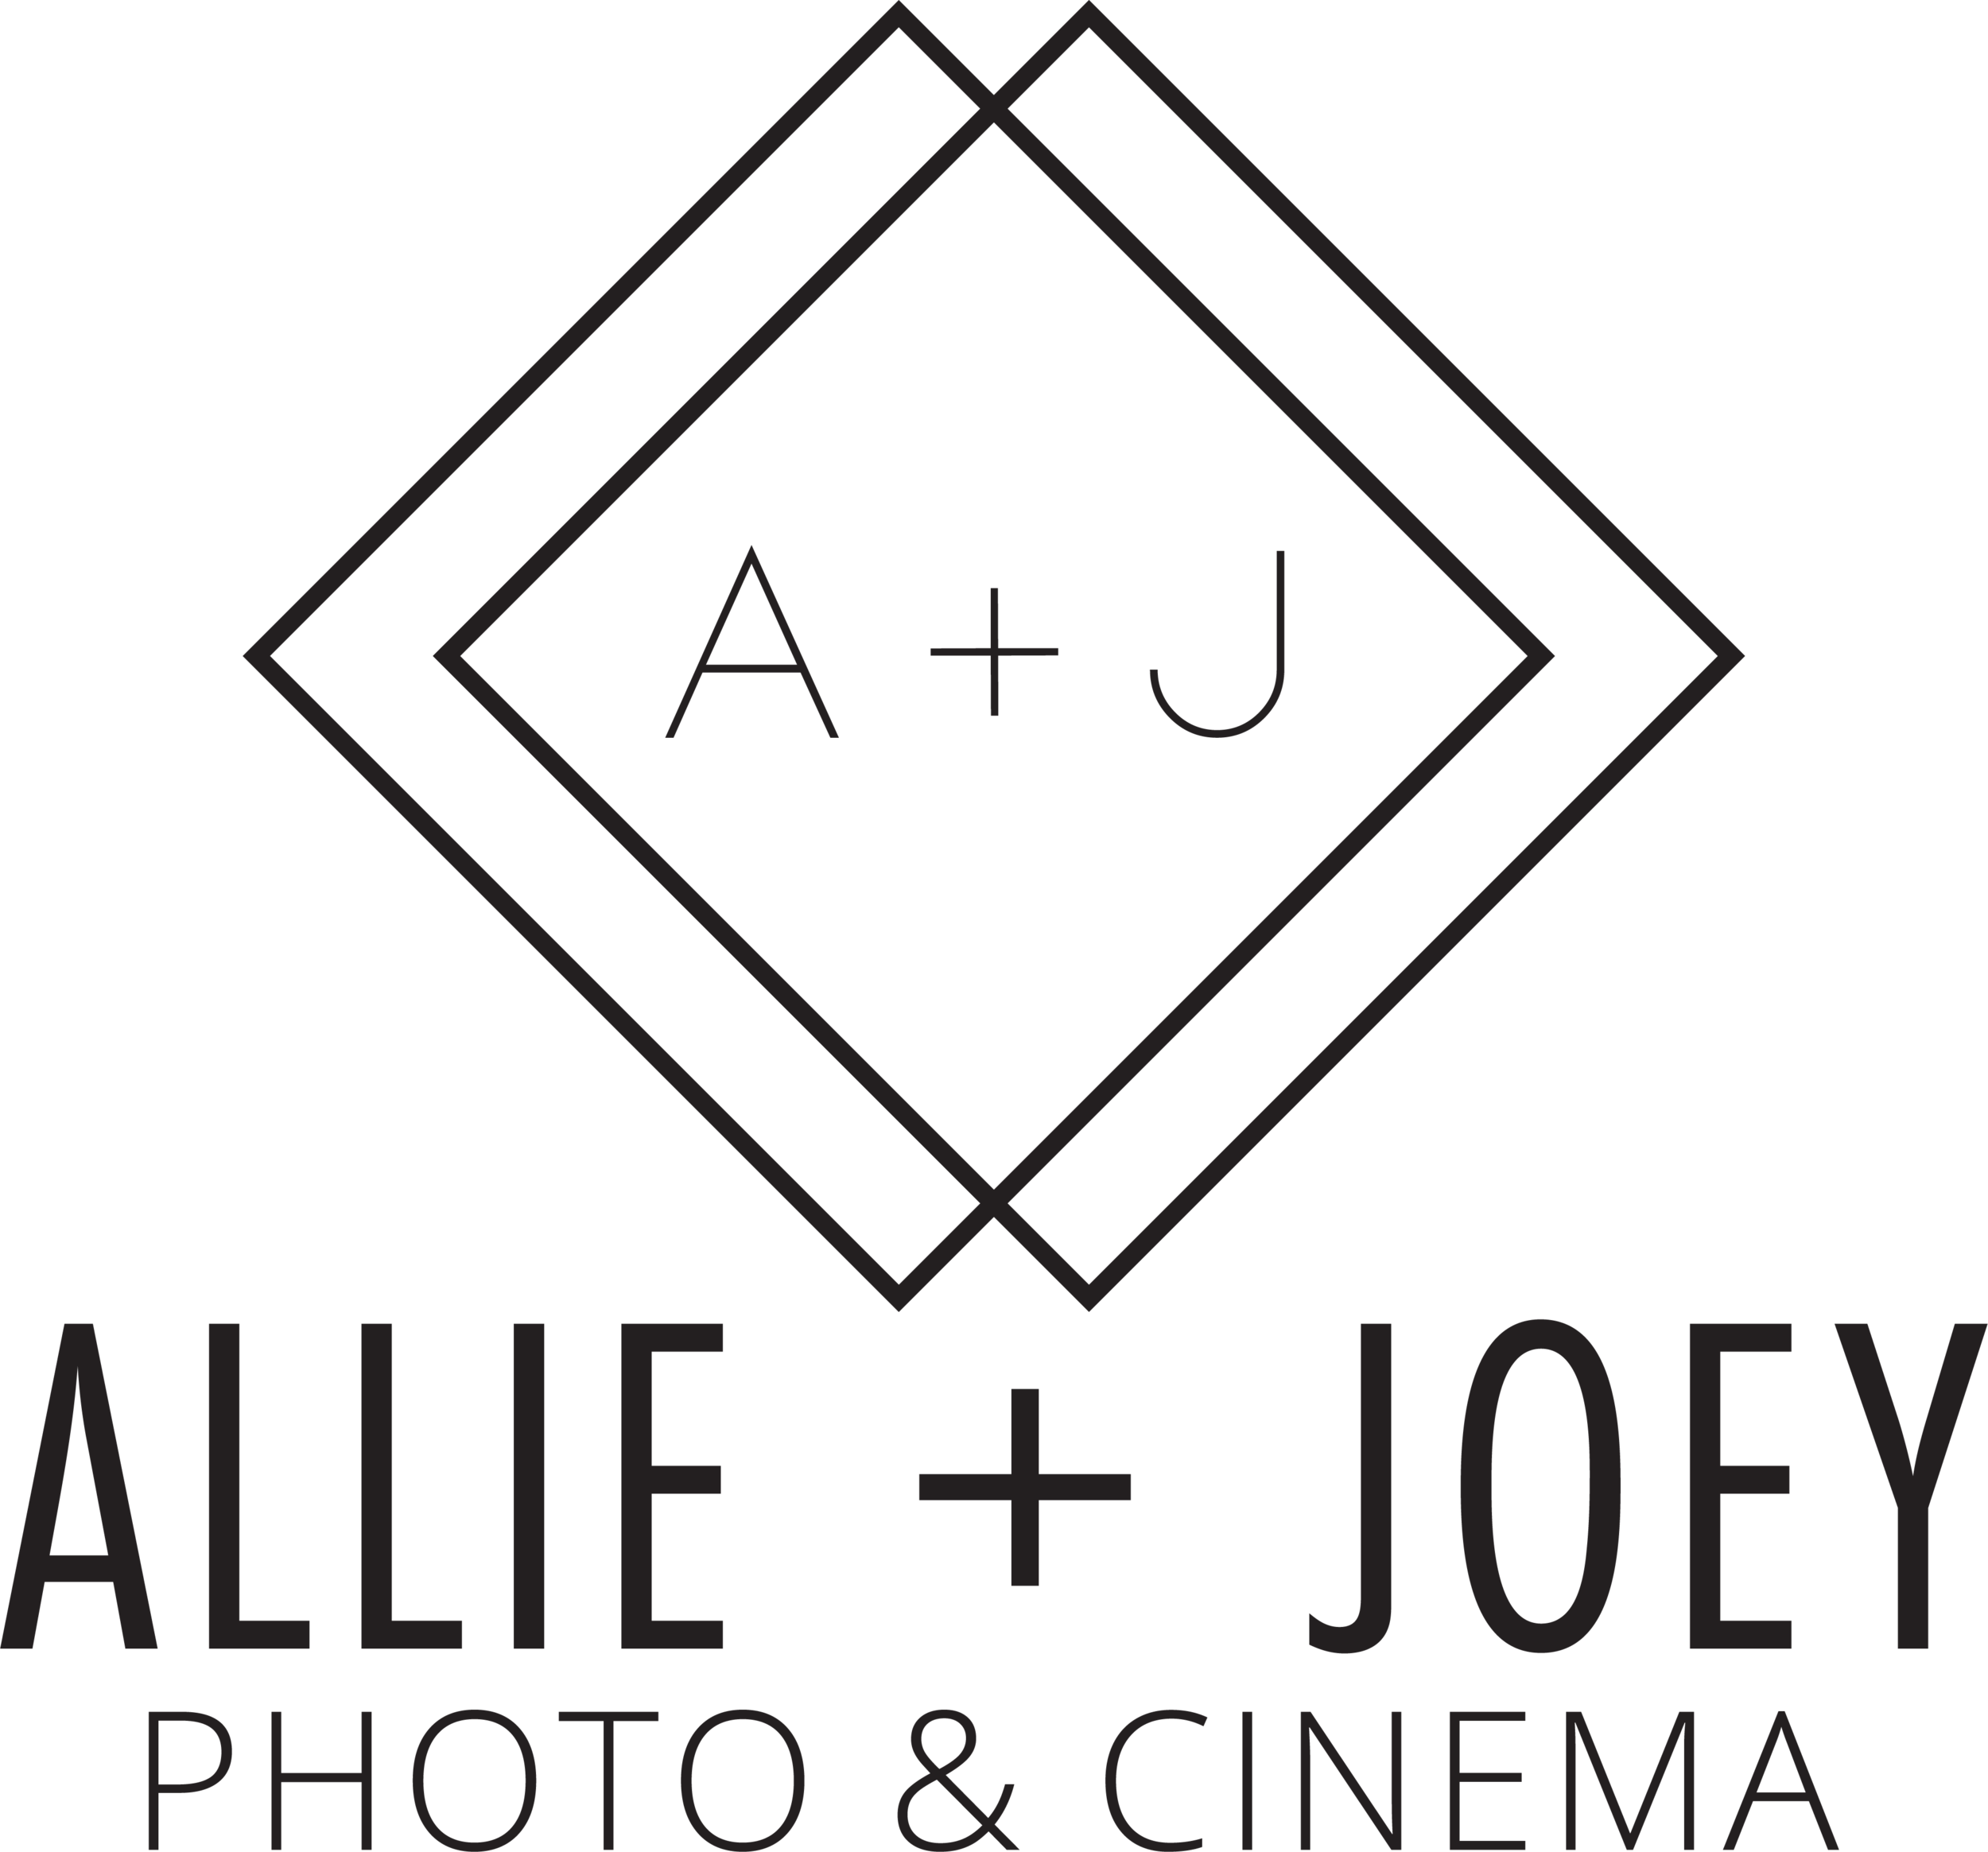 Allie_and_Joey_Logo2019.png